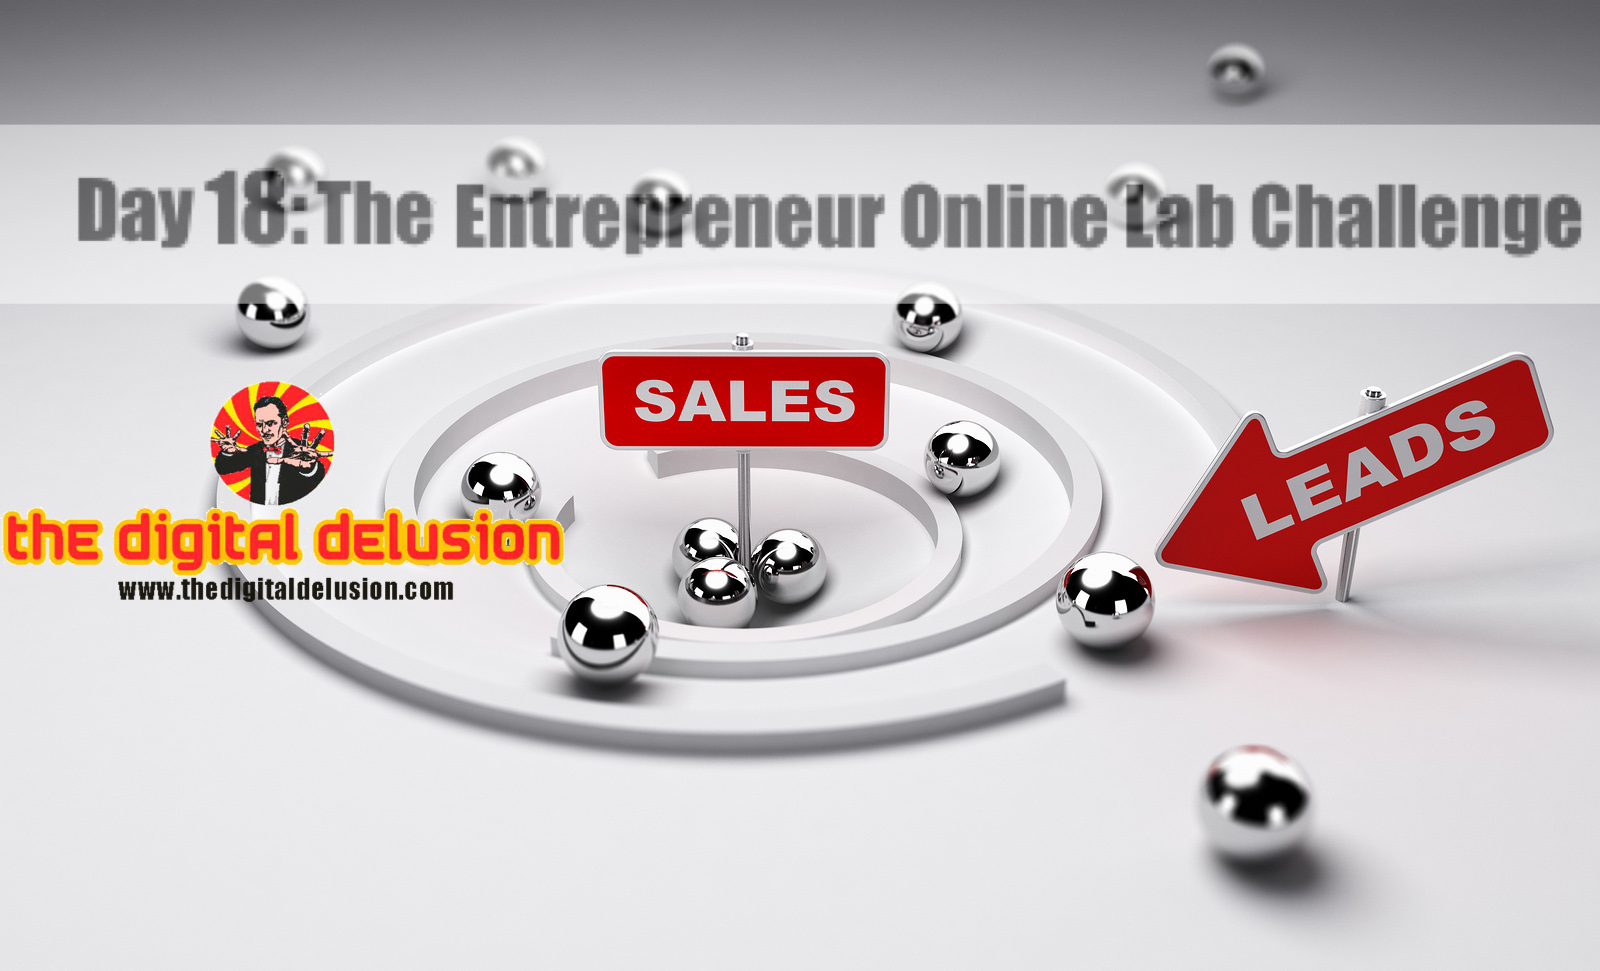 The Digital Delusion Blog 23-Day Entrepreneur Challenge day 18-2-2